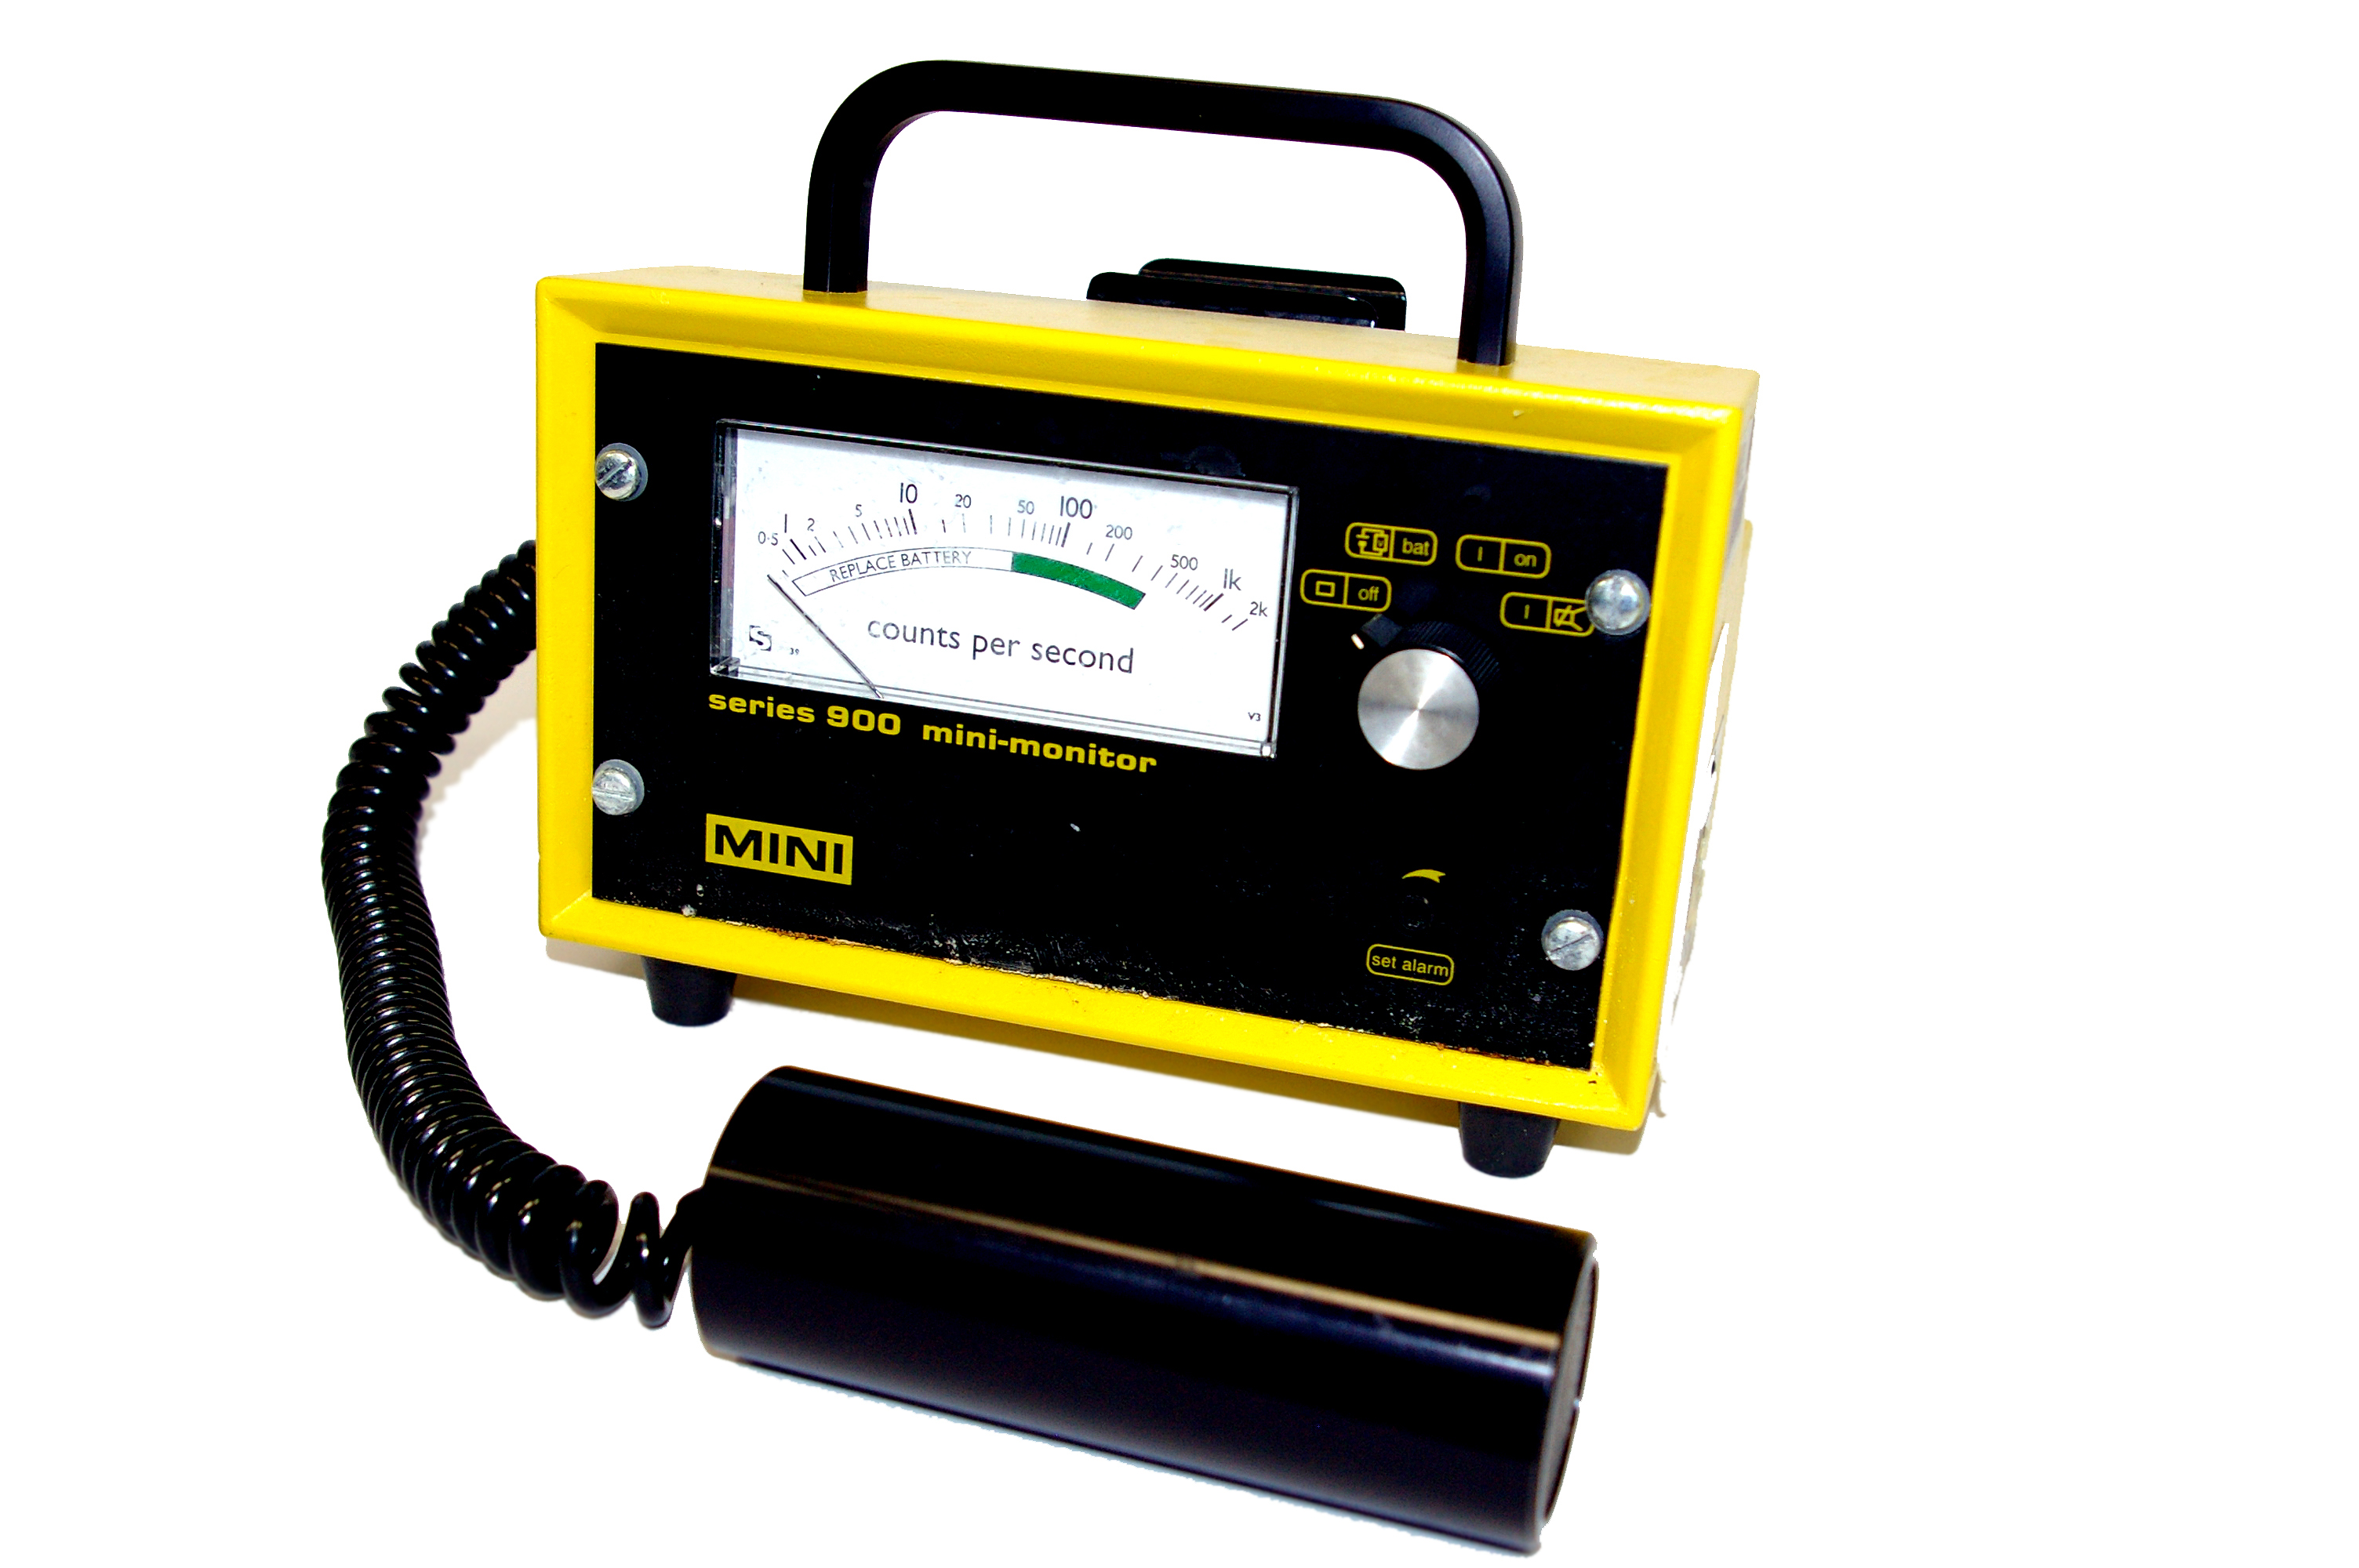 File:Portable Geiger counter series 900 mini-monitor.jpg